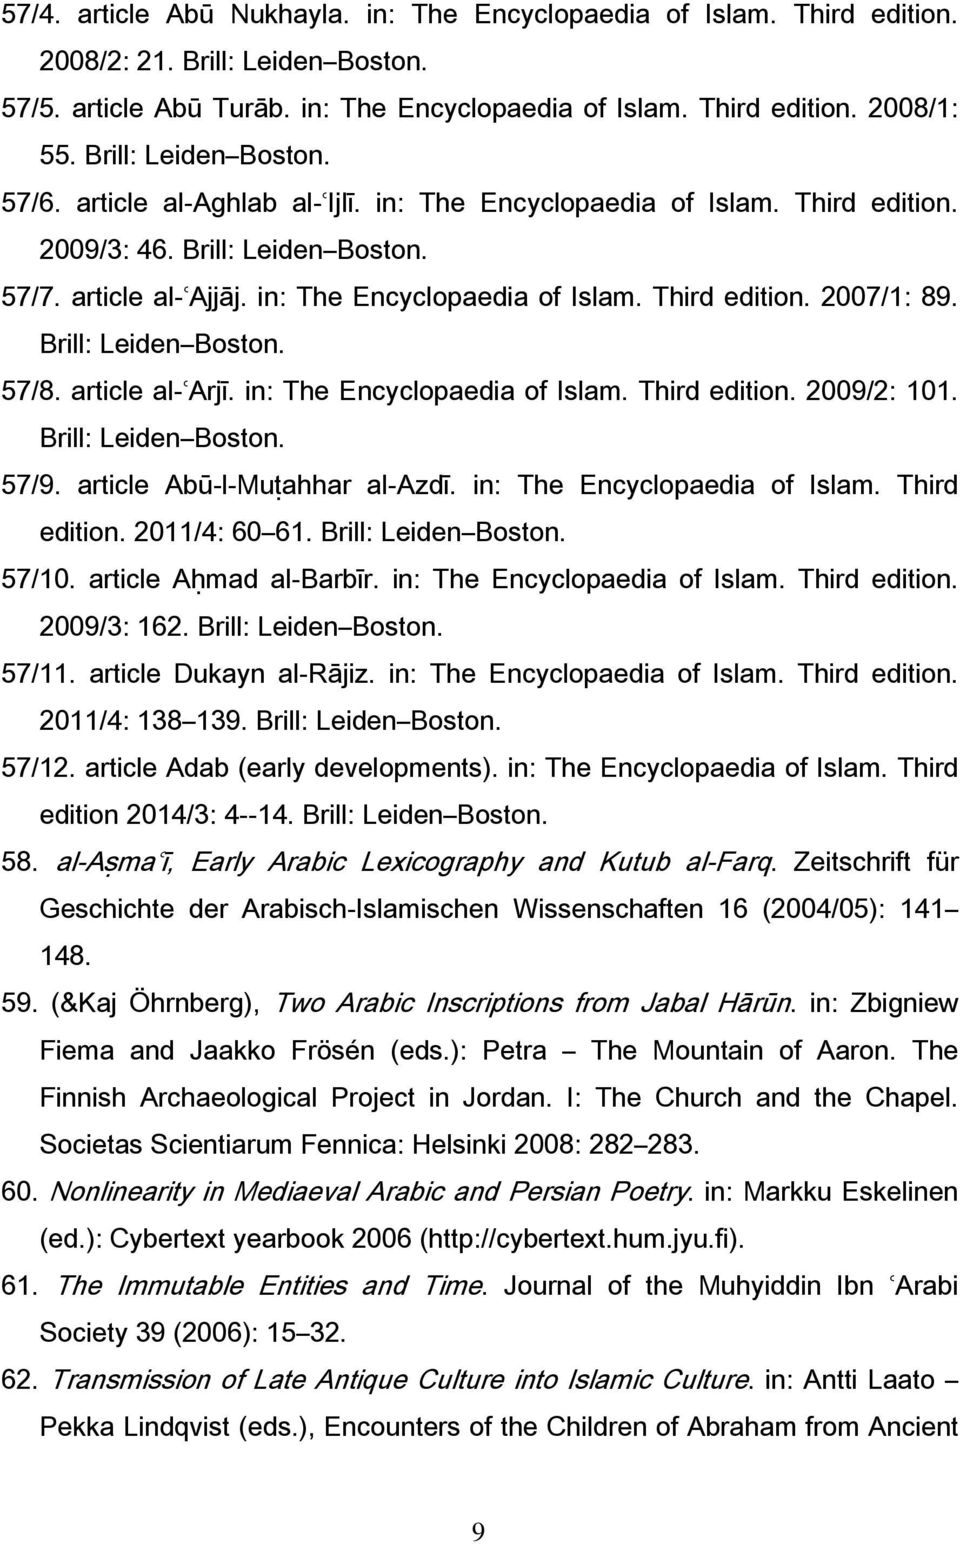 Brill: Leiden Boston. 57/8. article al-ʿarjī. in: The Encyclopaedia of Islam. Third edition. 2009/2: 101. Brill: Leiden Boston. 57/9. article Abū-l-Muṭahhar al-azdī. in: The Encyclopaedia of Islam. Third edition. 2011/4: 60 61.